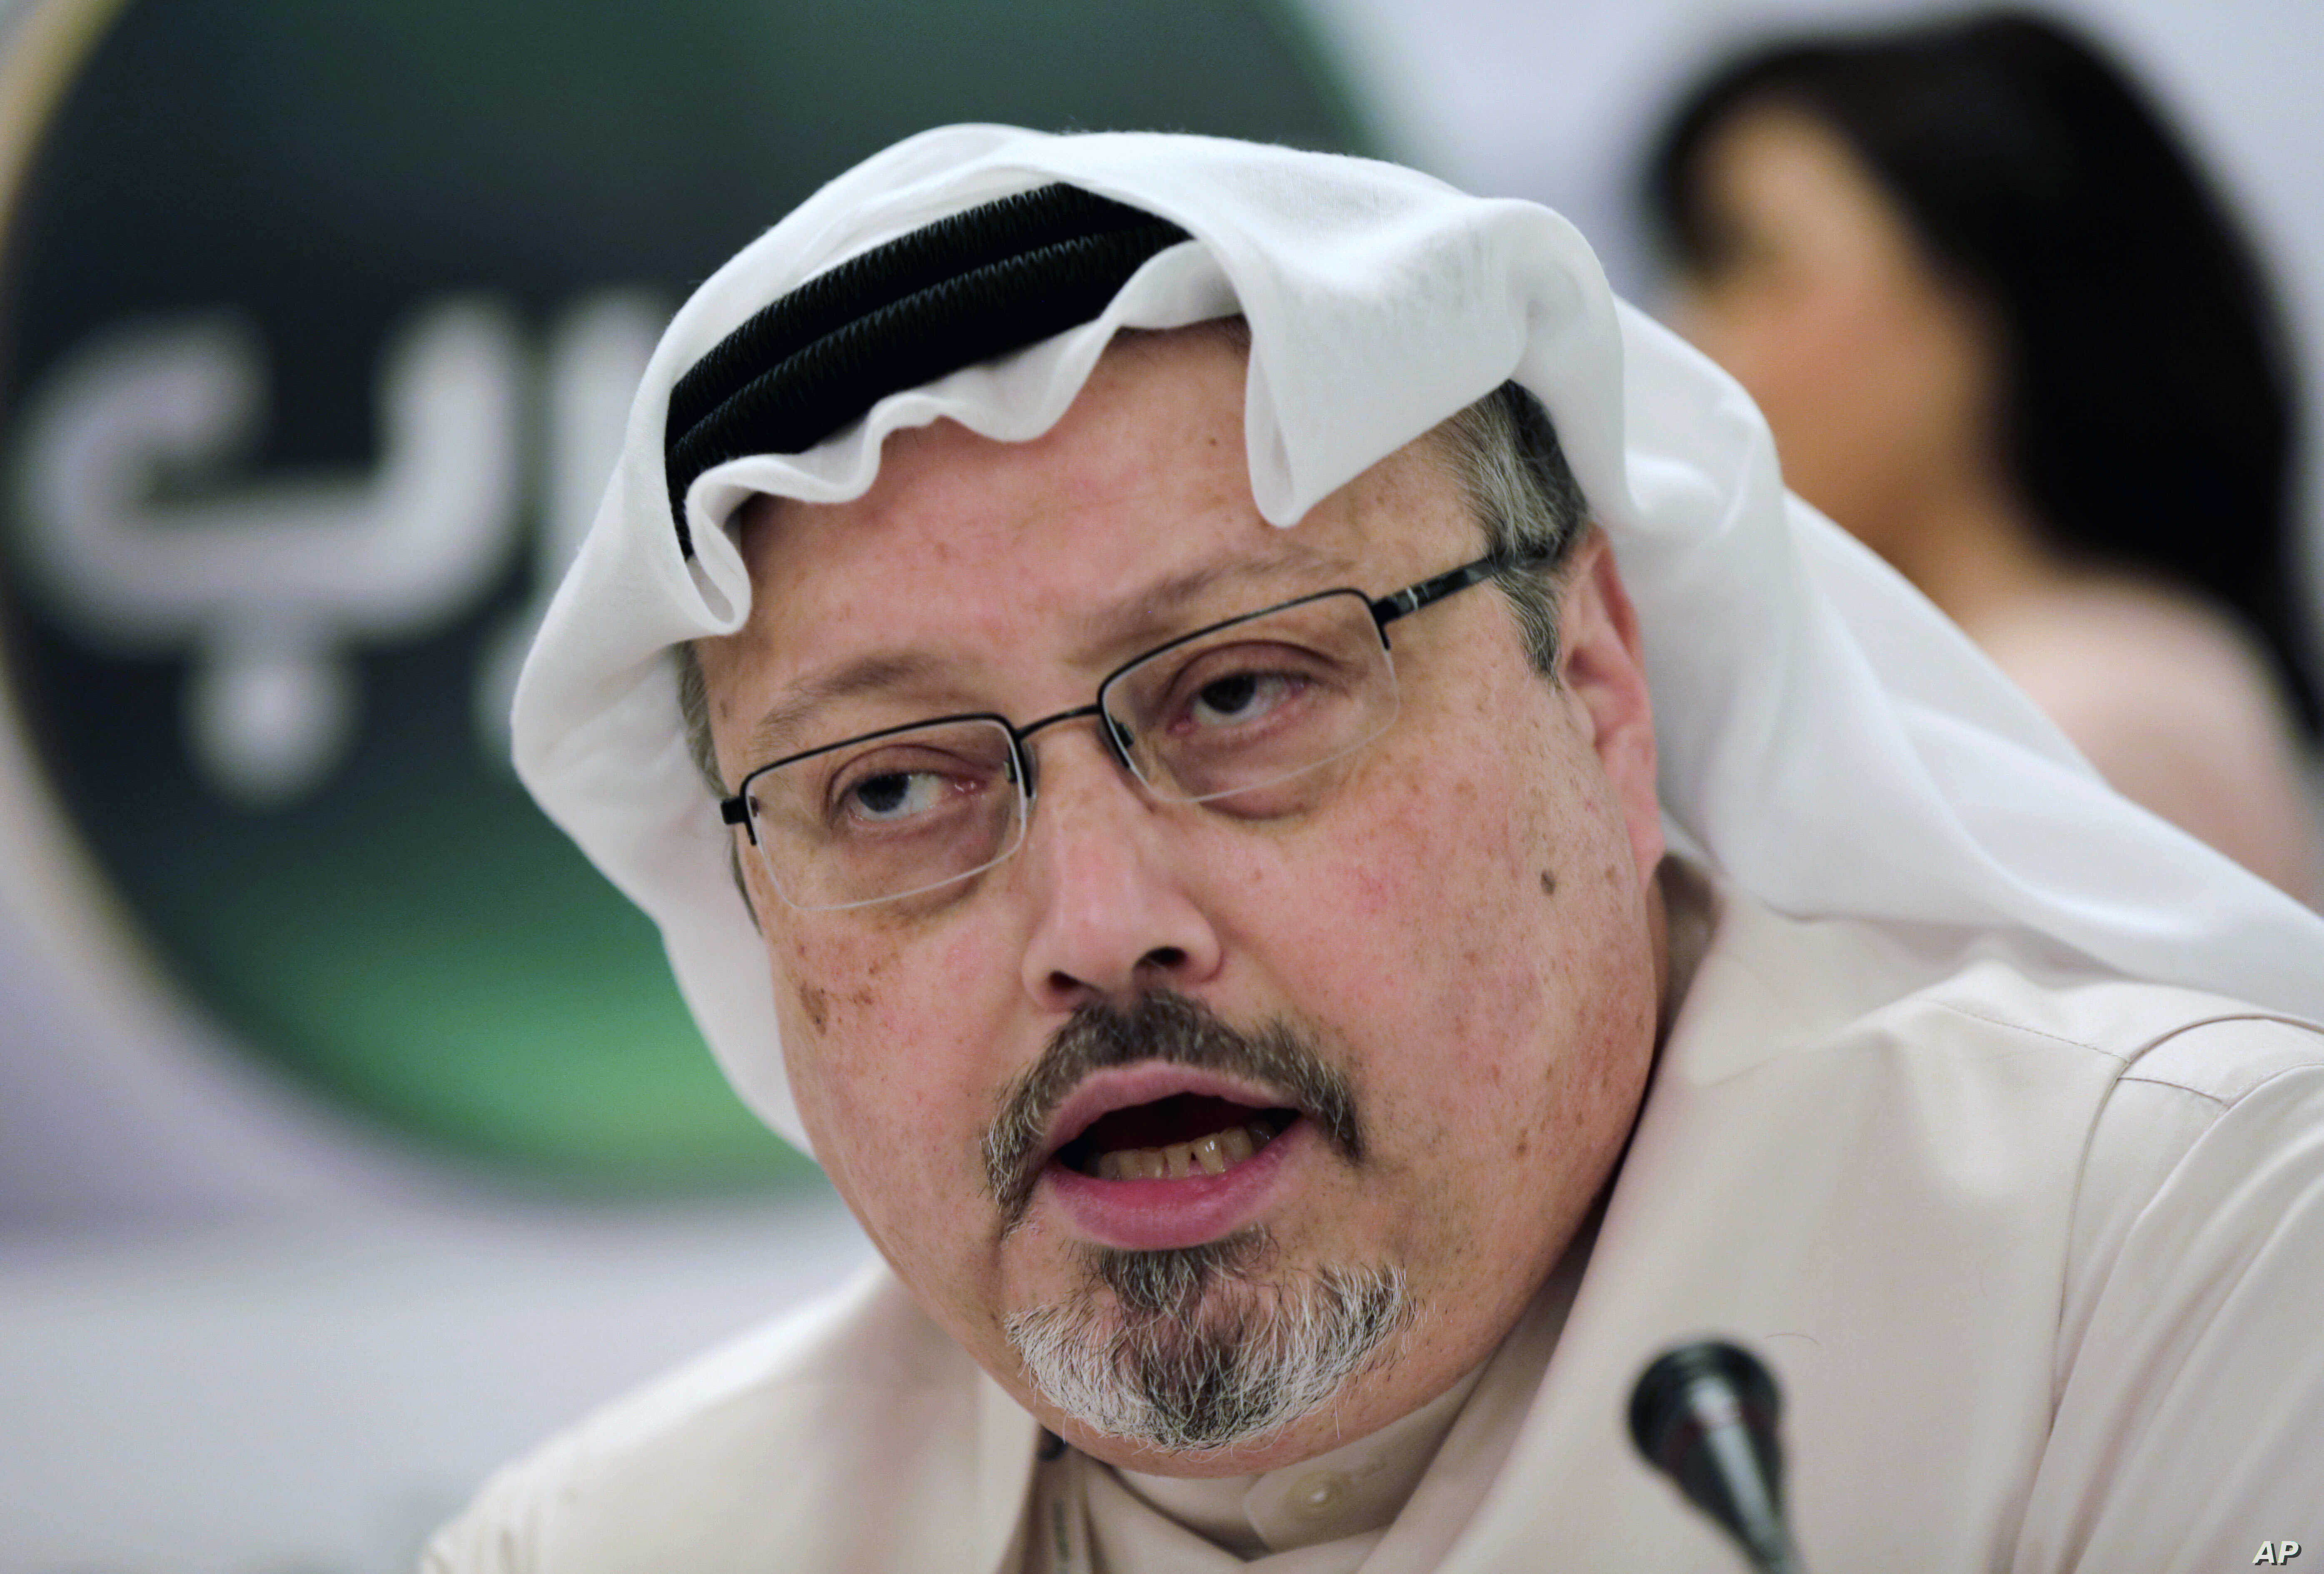 FILE - Saudi journalist Jamal Khashoggi speaks during a press conference in Manama, Bahrain, Feb. 1, 2015. A pro-government Turkish newspaper  Wednesday published a gruesome recounting of the alleged slaying of Khashoggi at the Saudi Consulate in Ist